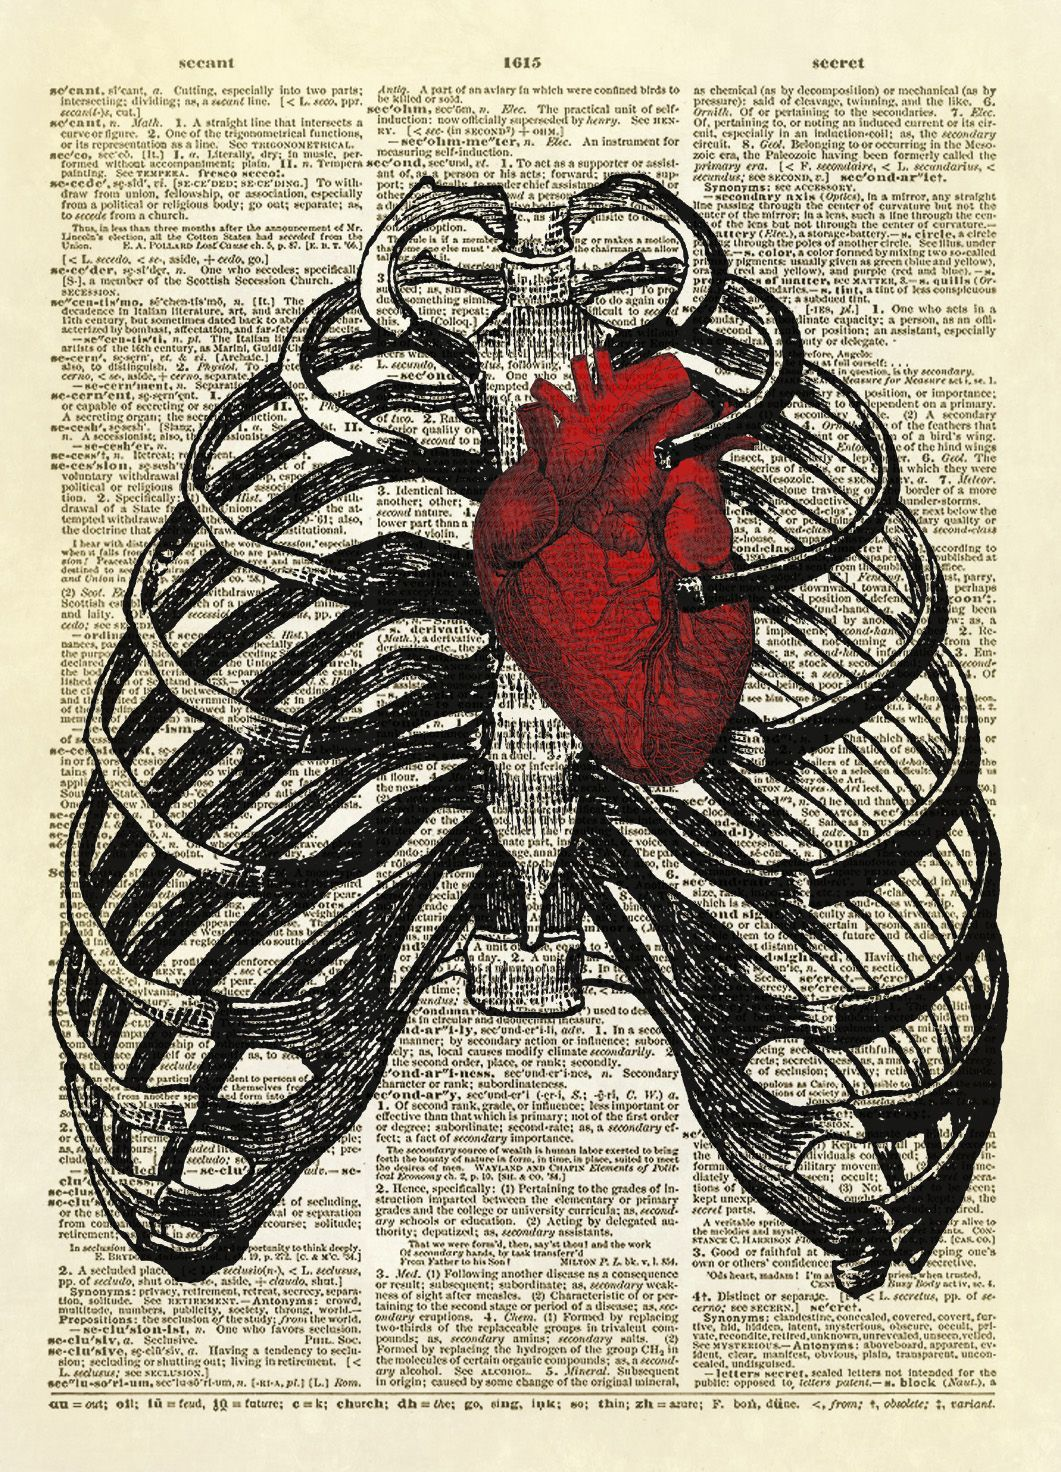 Human Thorax with Human Heart Dictionary Art Print No. 10 Two antique medical illustrations combined to create one amazing image. A human thorax surrounds a red human heart.  Fabulous! YOU WILL RECEIVE A PRINT ONLY. NO FRAME OR MAT IS INCLUDED. This listing is for an amazing image printed on an upcycled vintage dictionary page. We rescue old dictionaries and books from thrift stores and other sources and give them new life by printing vintage, heirloom, old-world style images onto their pages. Y